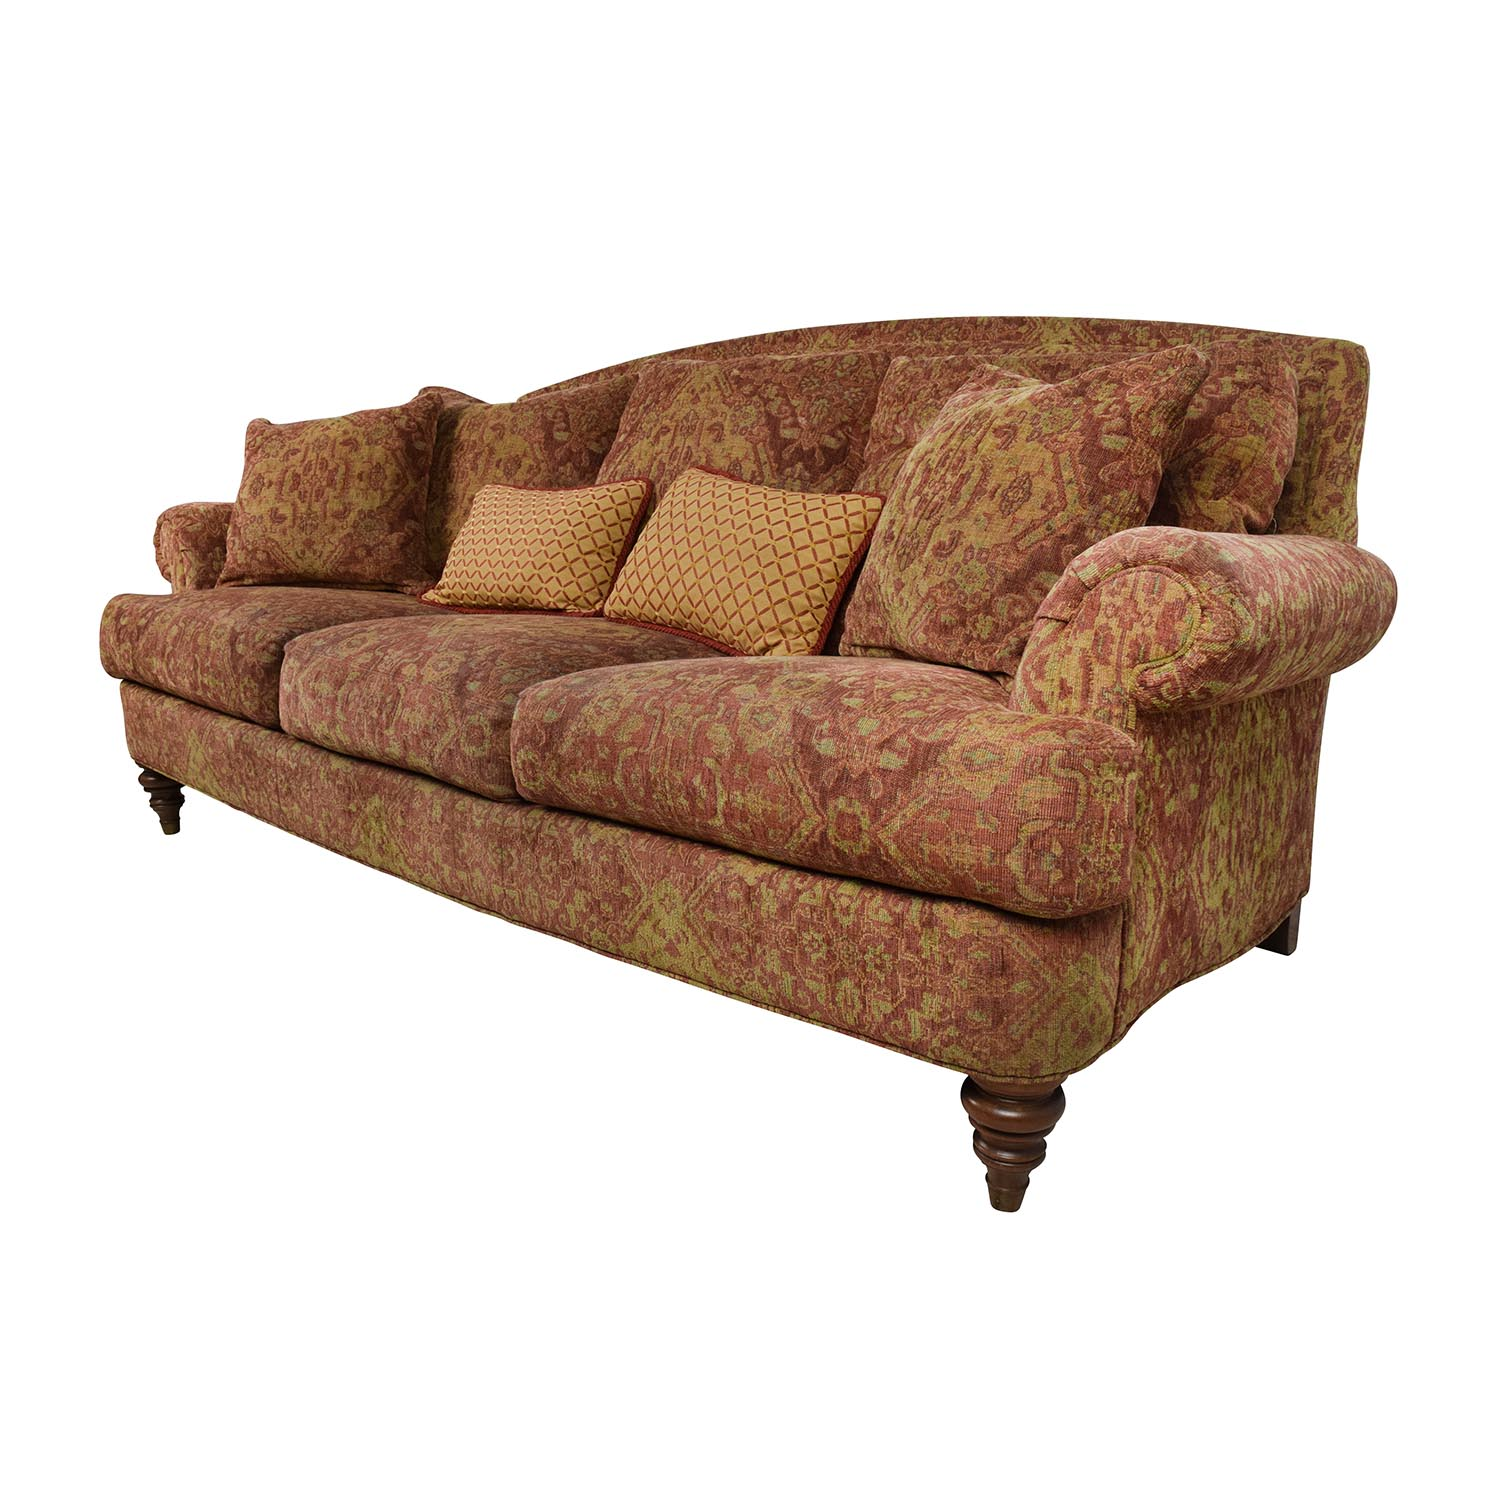 Sensational 65 Off Ethan Allen Ethan Allen Paisley Cushioned Sofa With Toss Pillows Sofas Gmtry Best Dining Table And Chair Ideas Images Gmtryco